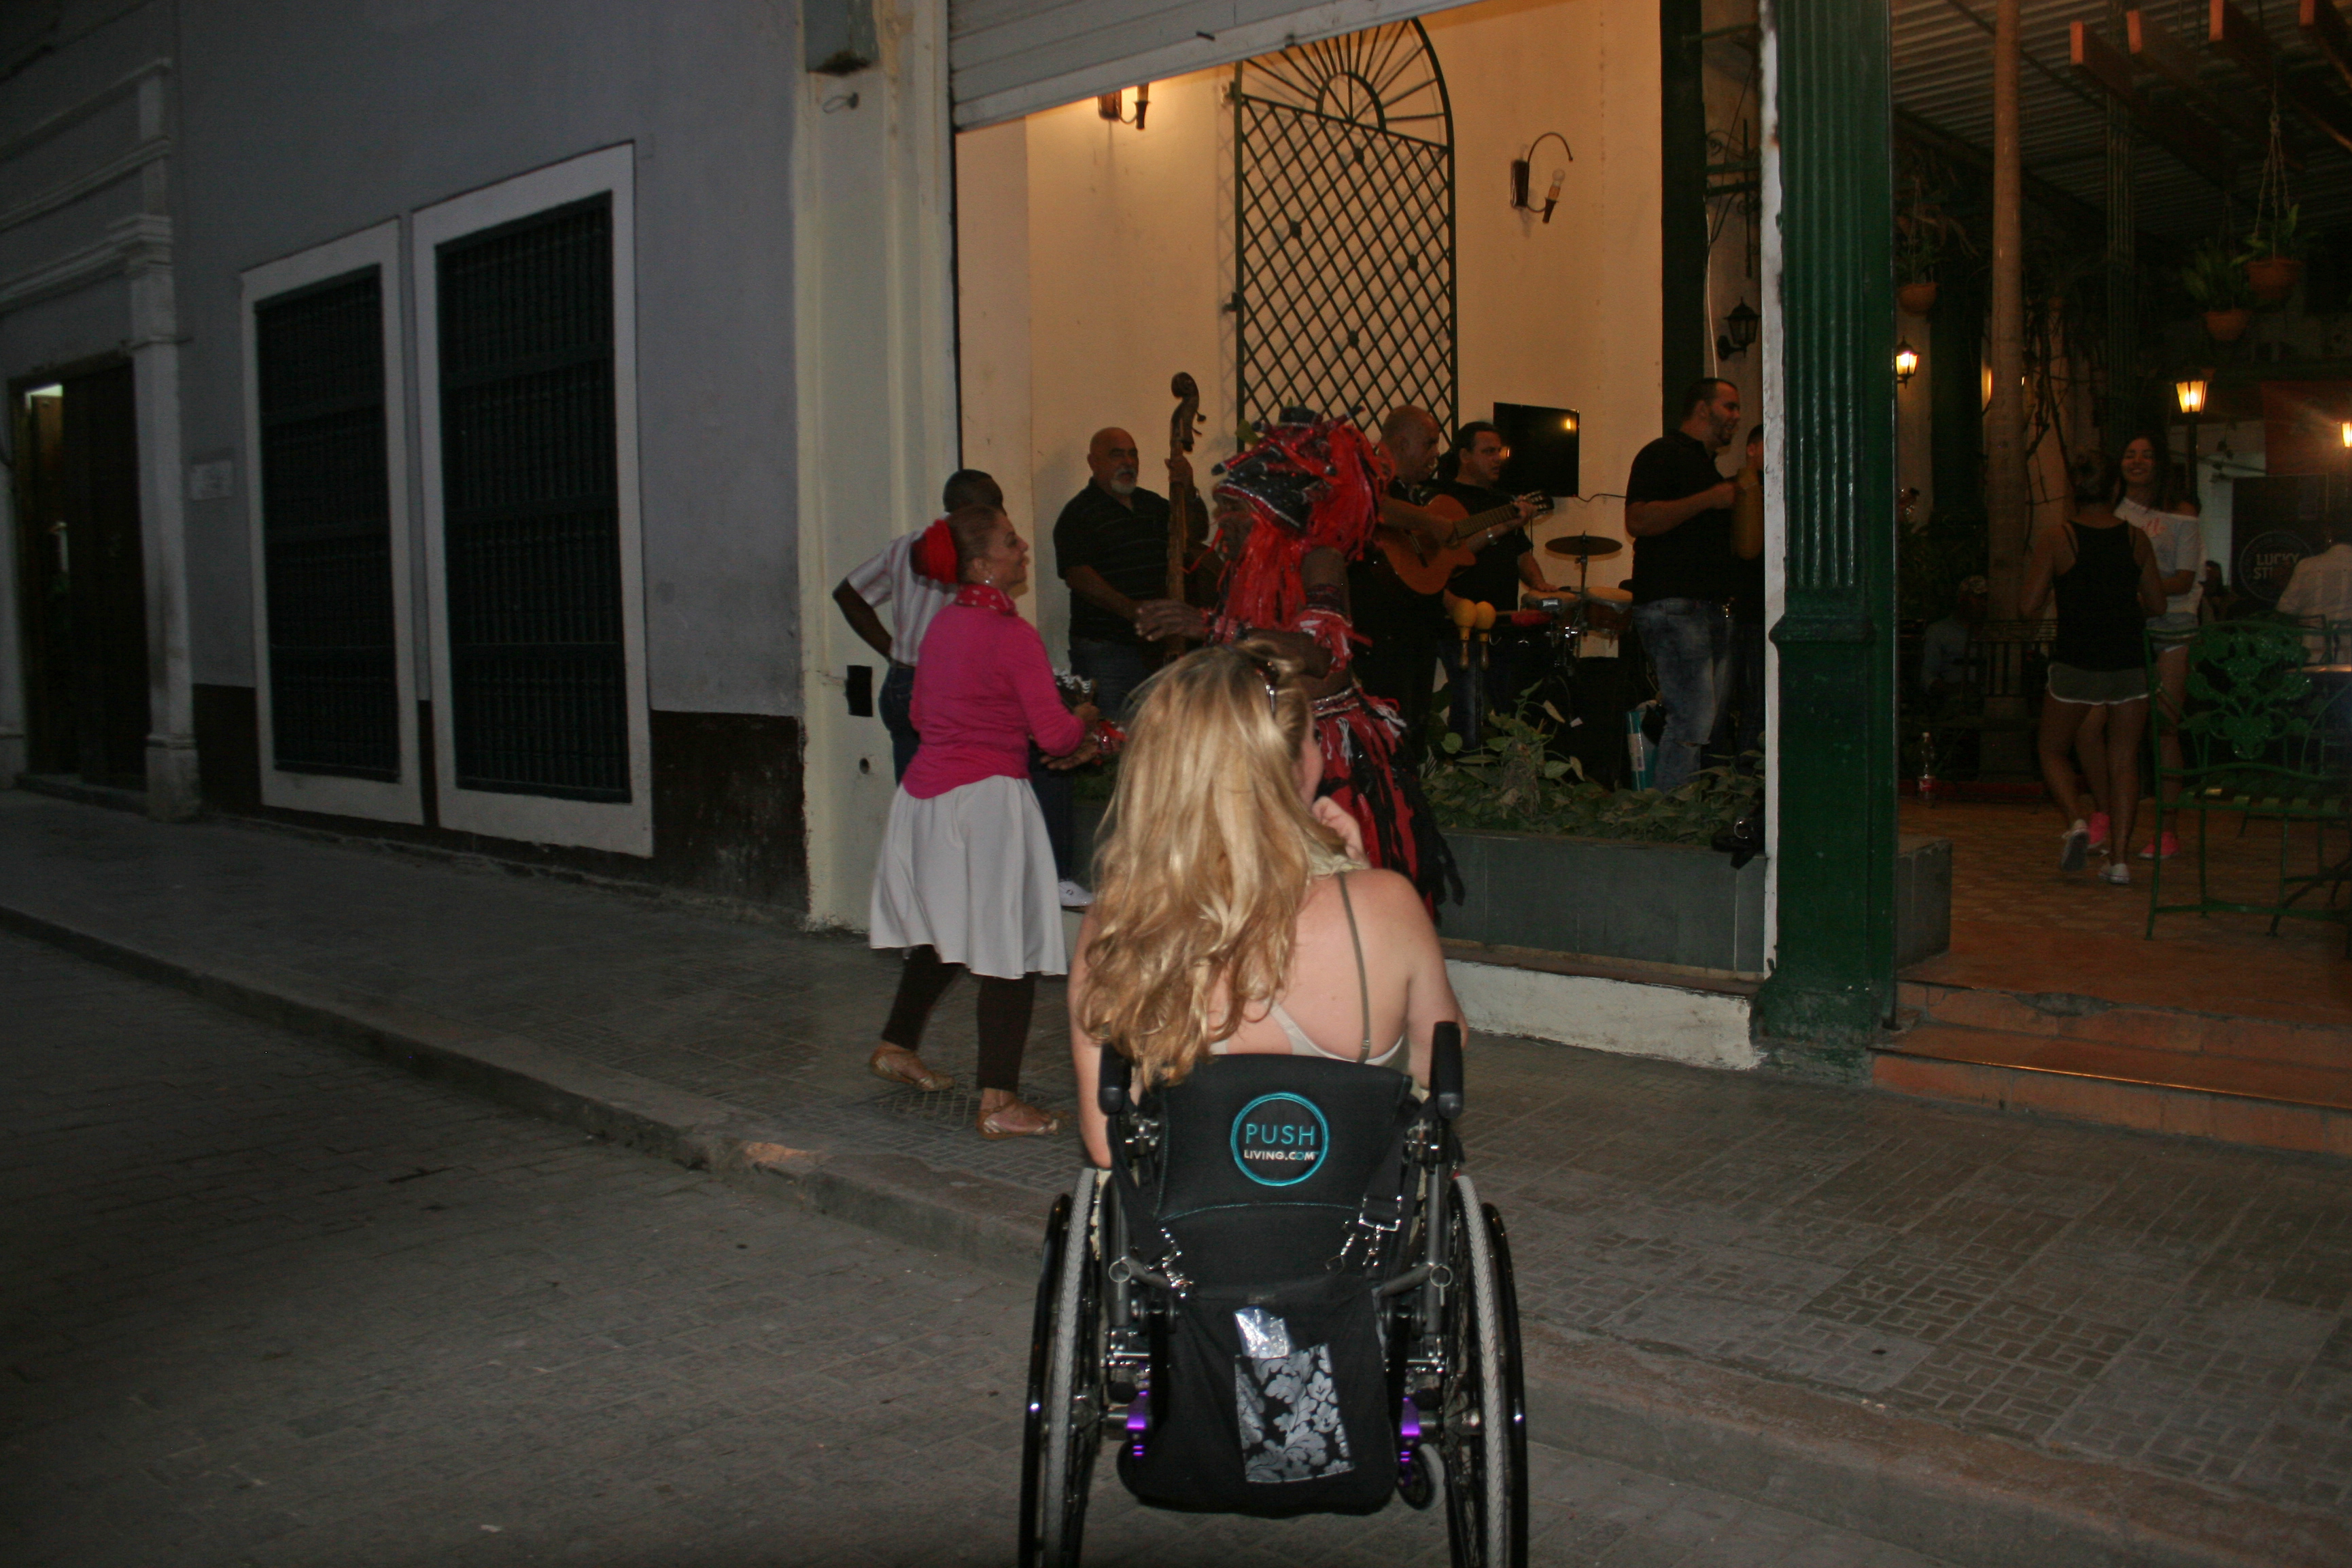 Watching live music from the street - Wheelchair Travel: Cuba Libre? How Free is Cuba for Travelers on Wheels?